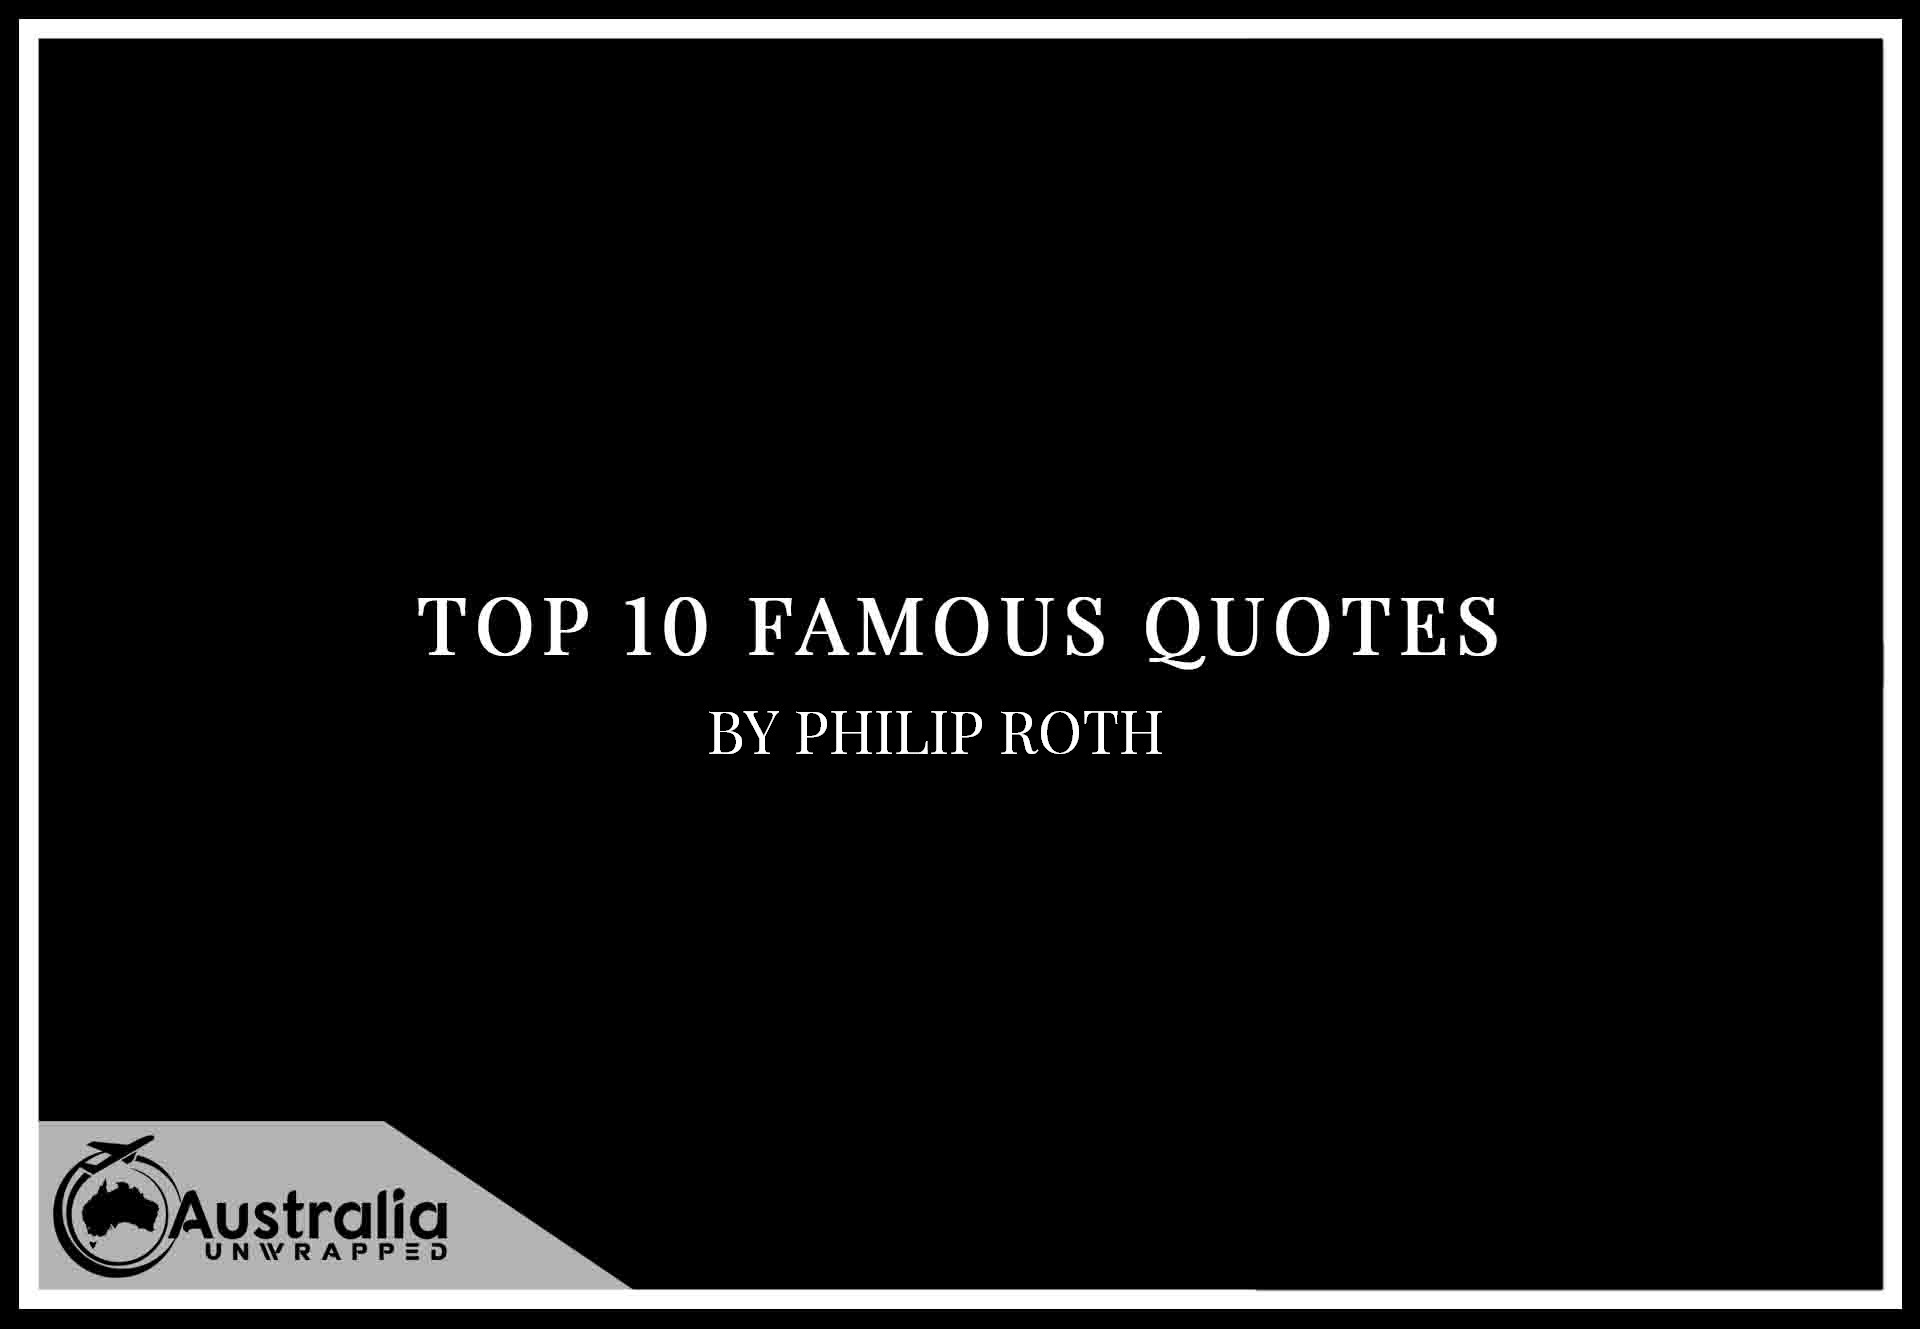 Top 10 Famous Quotes by Author Philip Roth